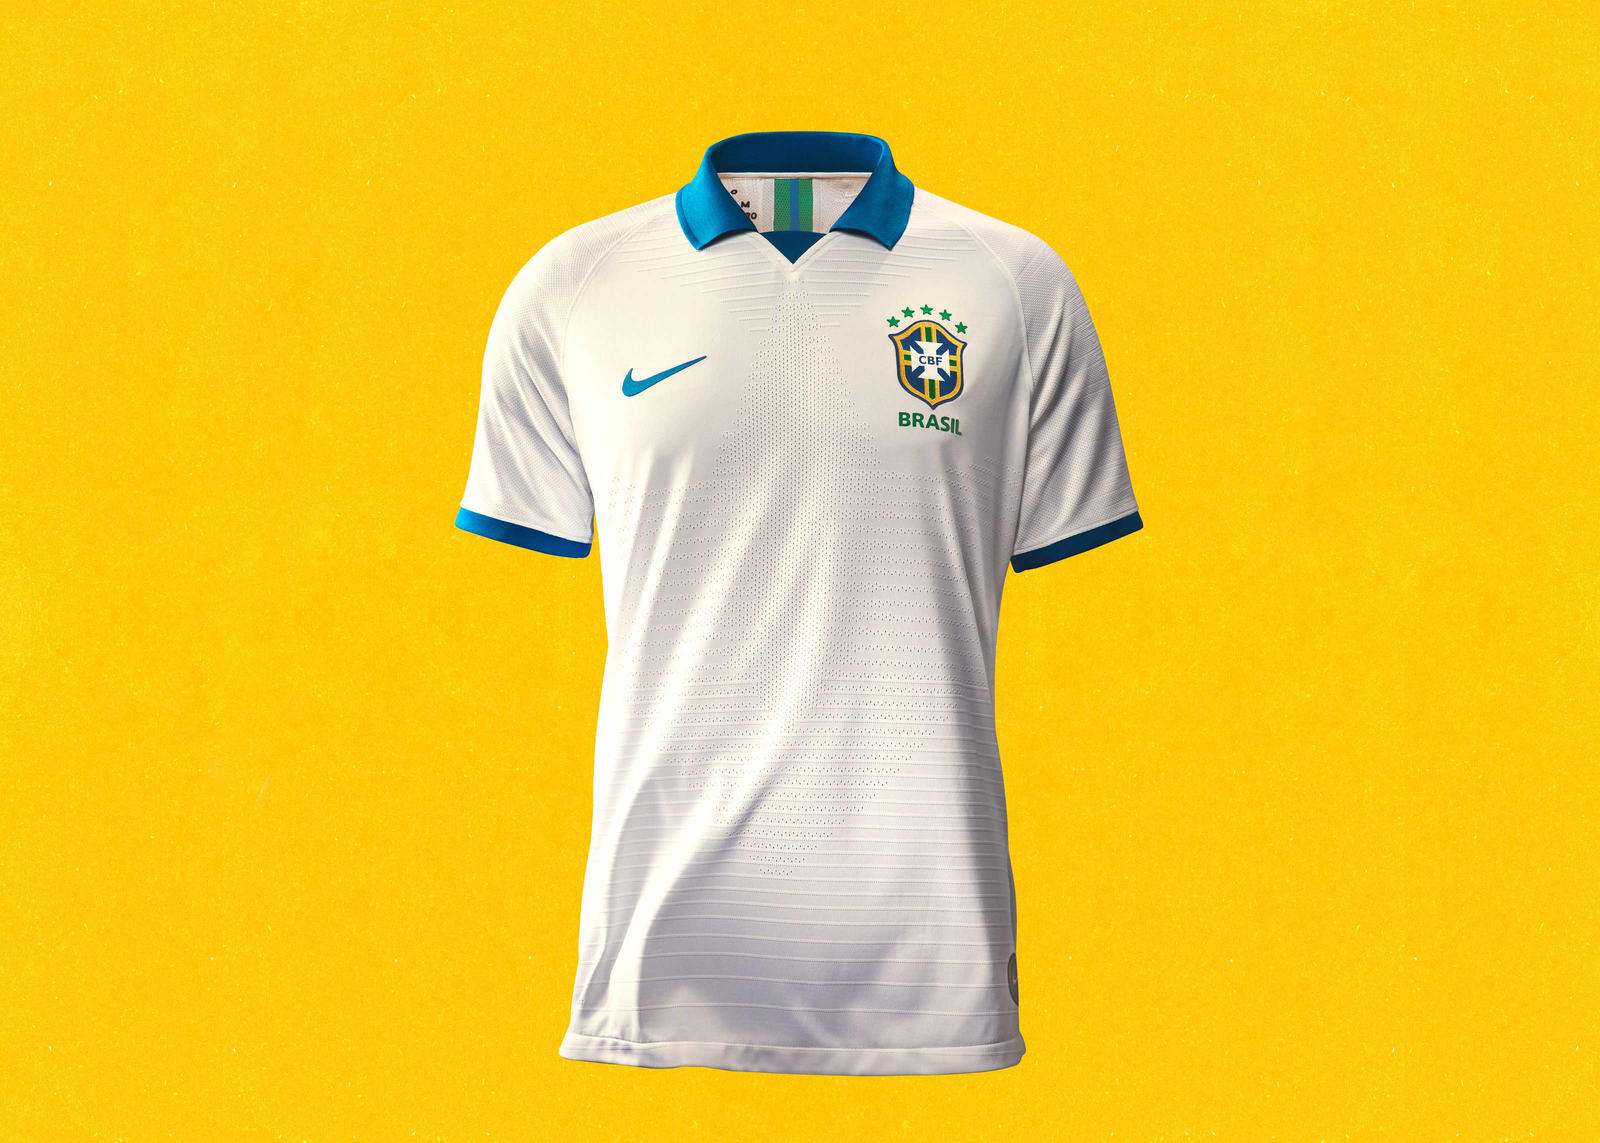 b78f8875f4e Nike Unveil an Iced Out Special Edition Brazil Jersey for This ...